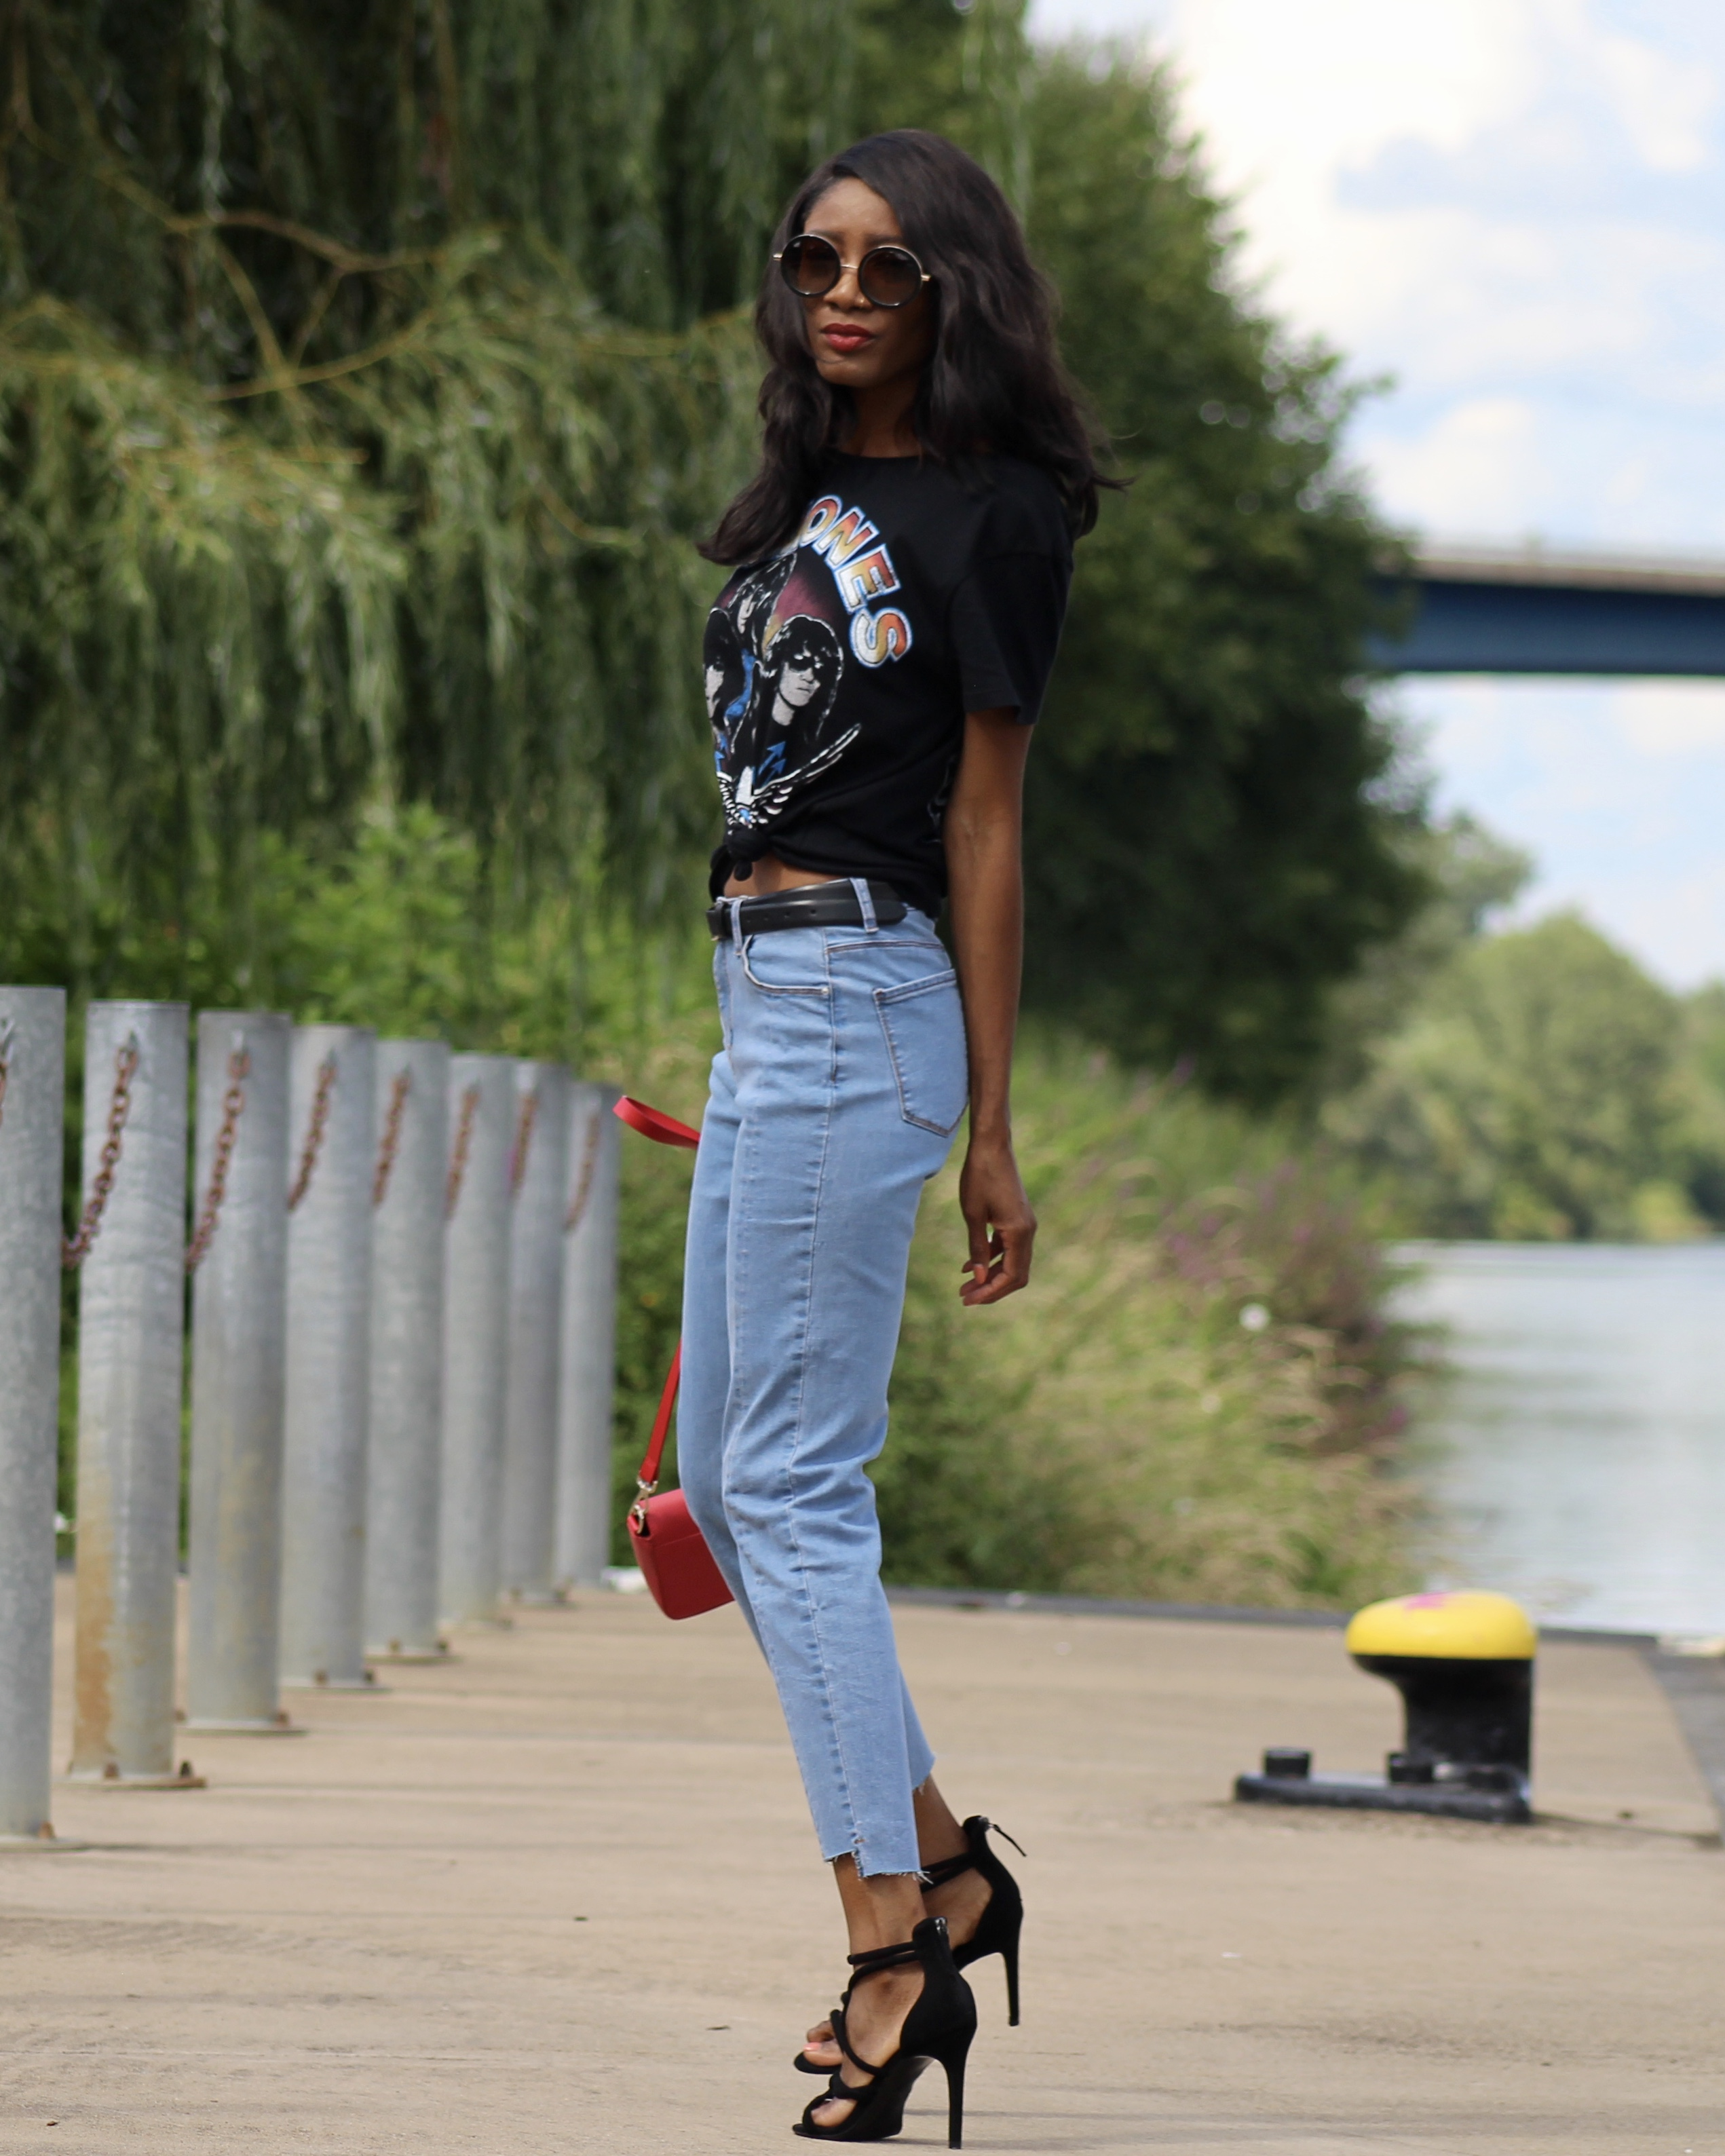 jeans graphic t-shirt heeled sandals